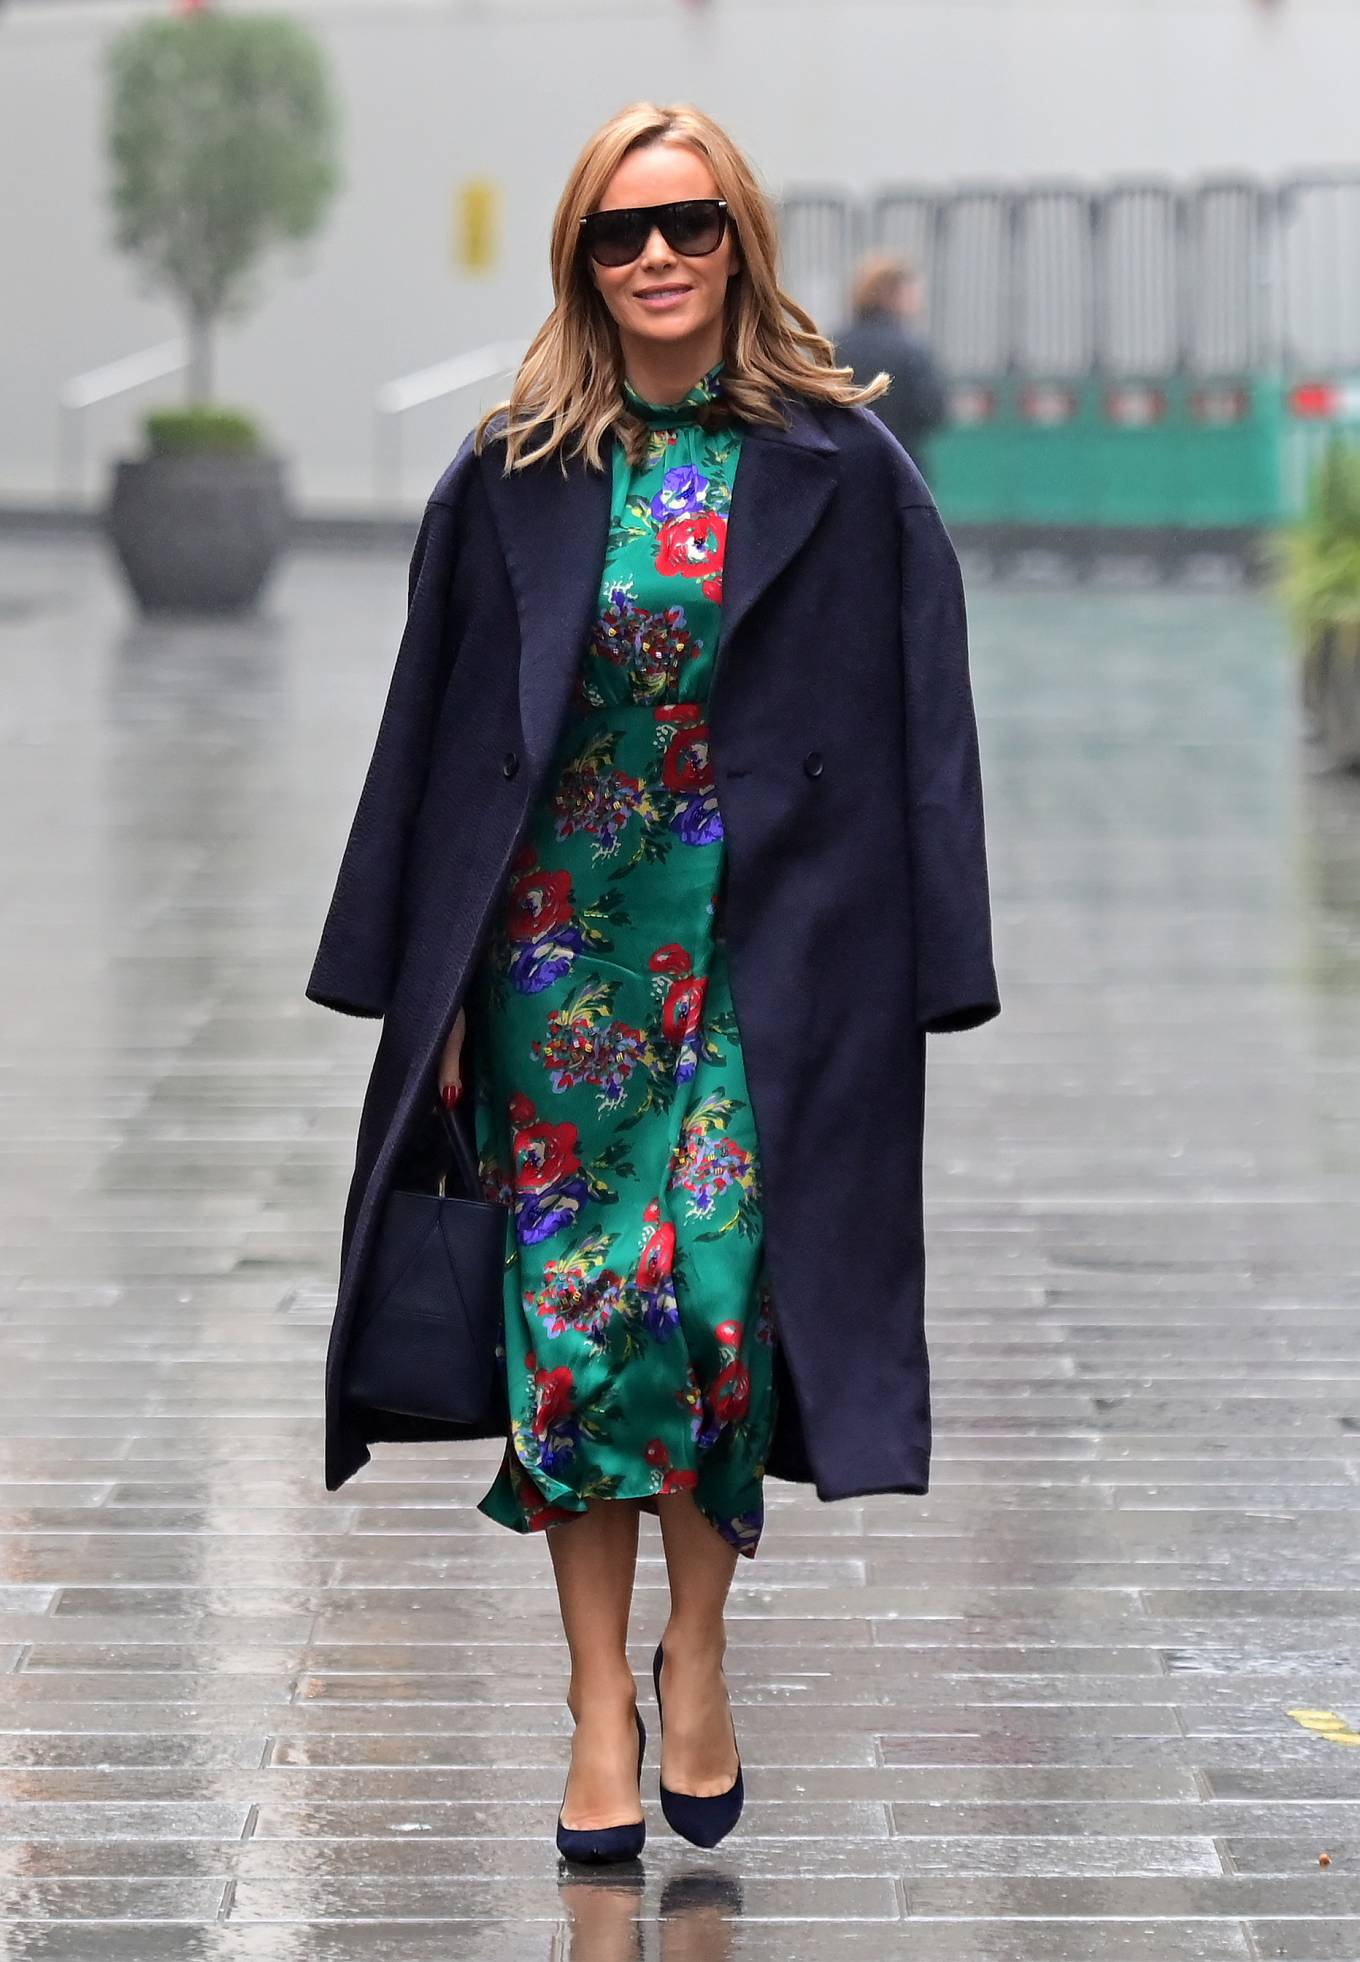 Amanda Holden - wearing a floral dress while leaving Heart Radio in London